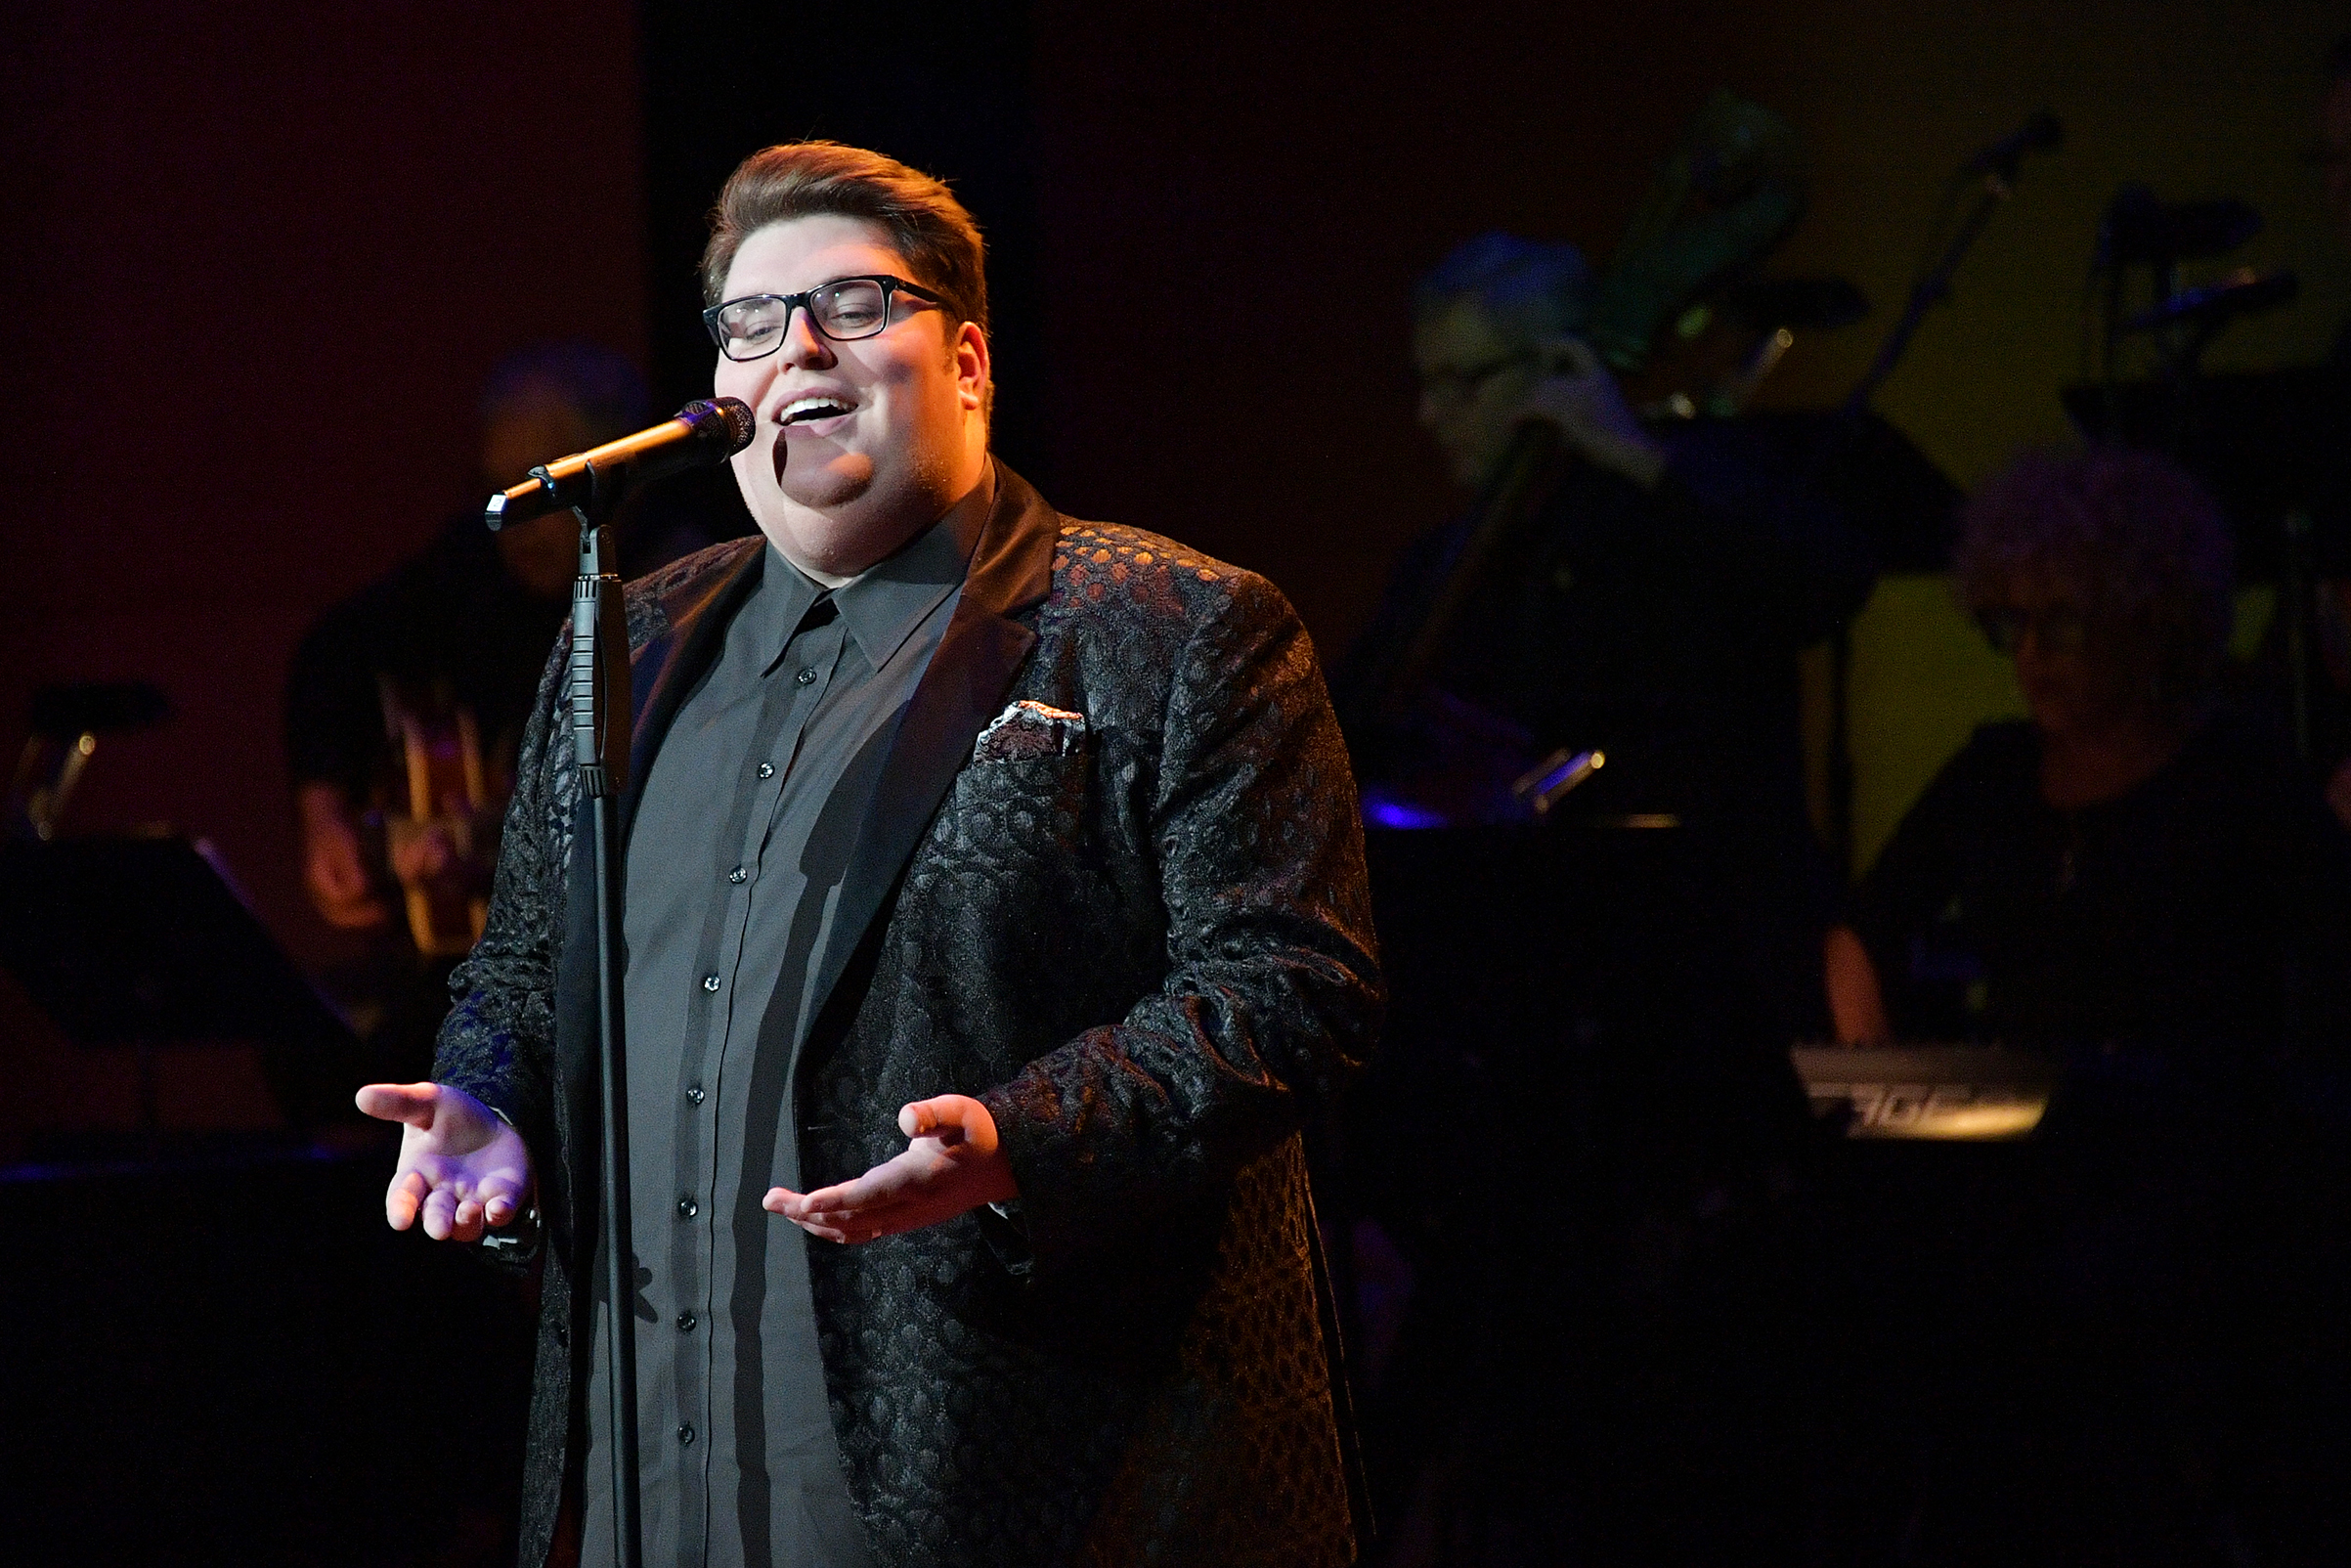 Singer Jordan Smith performs onstage during Lincoln Center's American Songbook Gala at Alice Tully Hall on May 29, 2018.